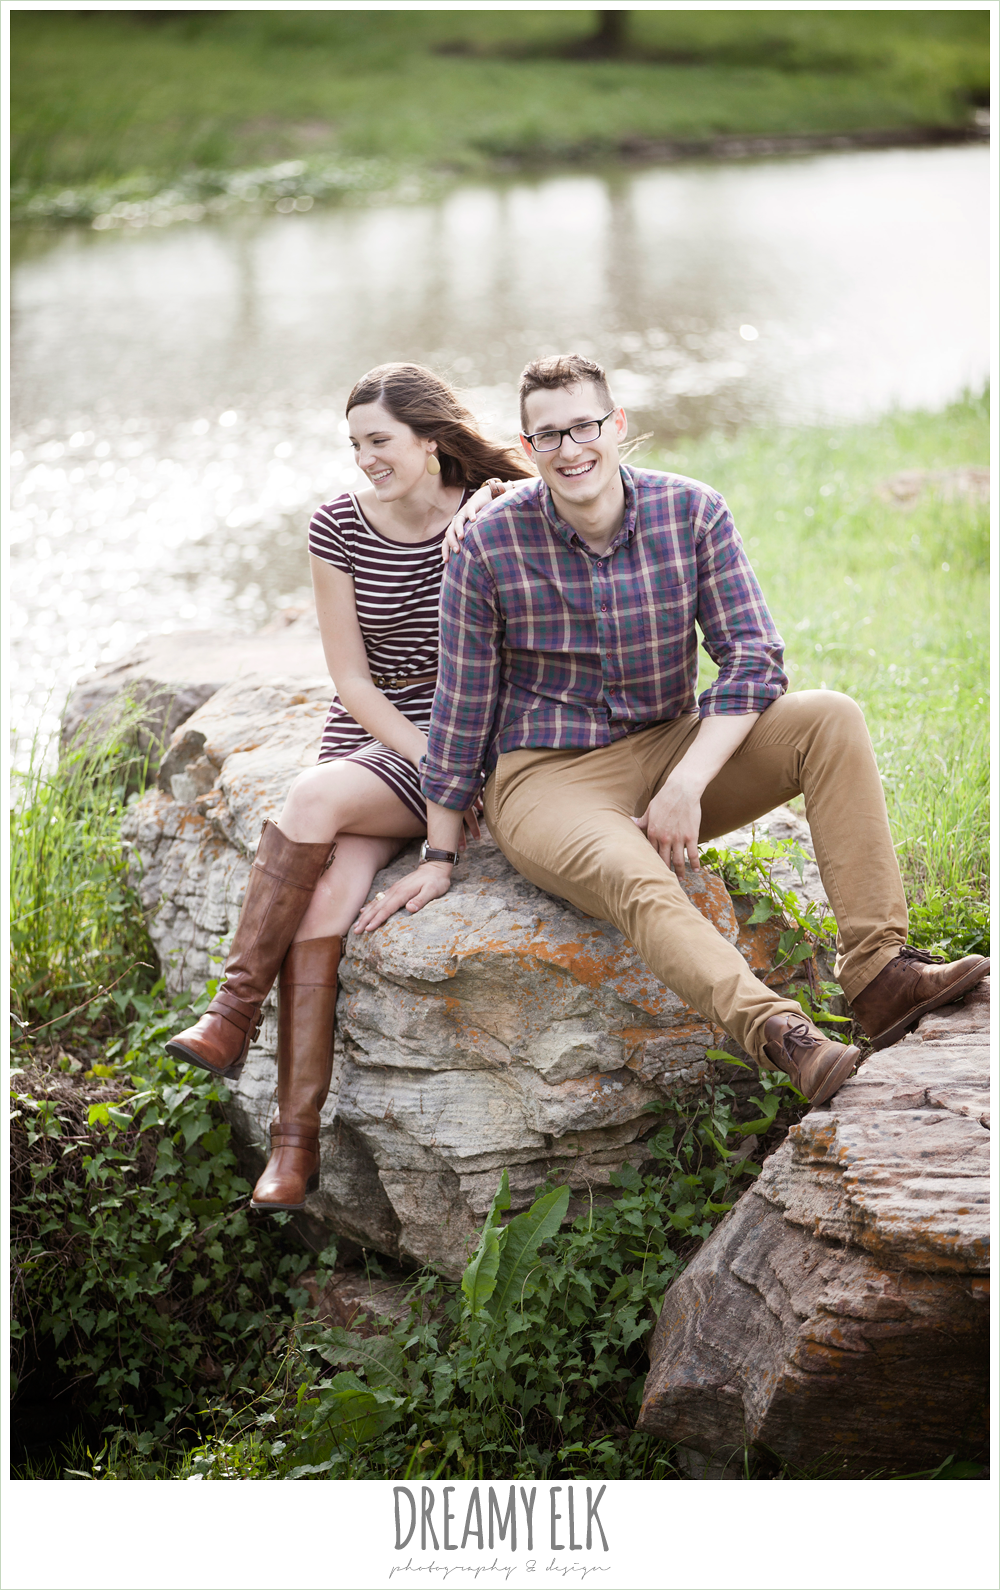 girl and guy sitting on a rock, woodsy engagement photo, research park, college station, texas {dreamy elk photography and design}